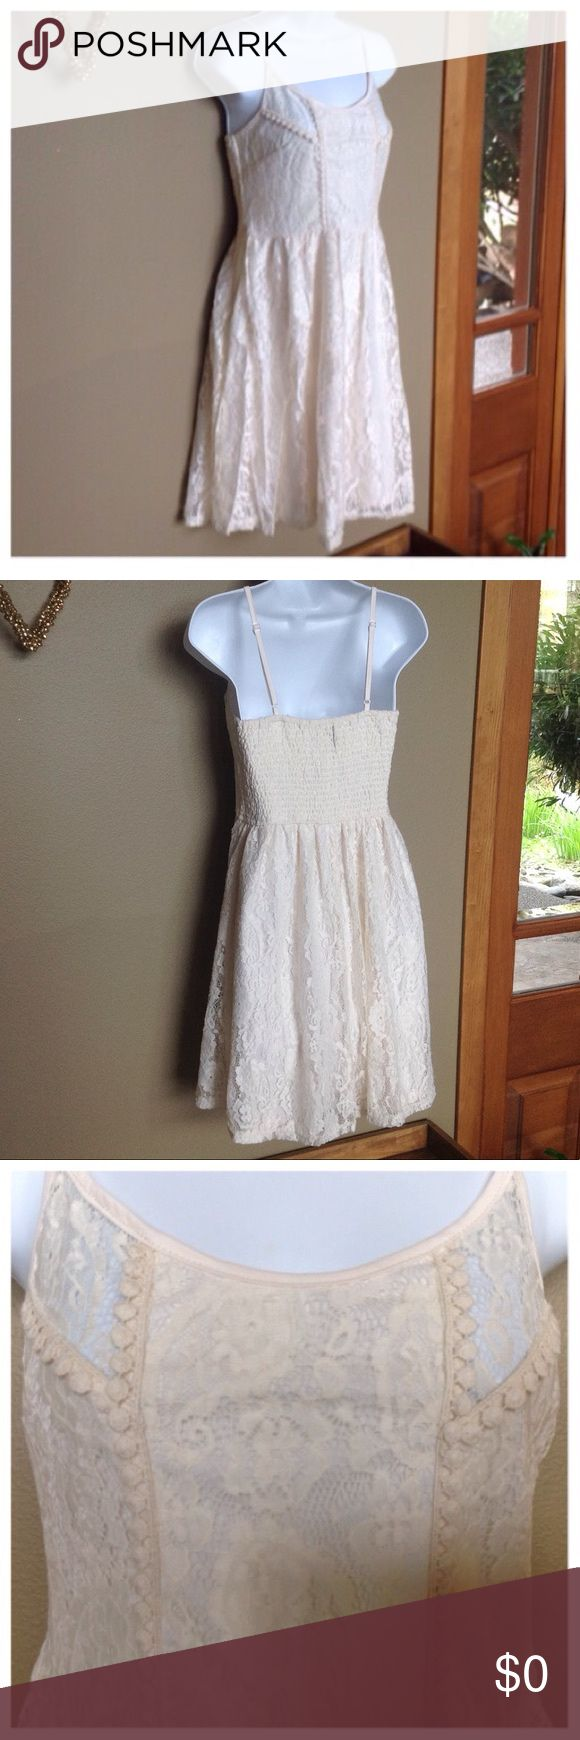 """🍃💕Floral Lace Fit & Flare Strapless Dress Ivory Gorgeous fit and flare floral lace overlay dress in Ivory. Features scoop neck with adjustable spaghetti straps, rear smocked bodice ensures a beautiful fit, fully lined. Pieced front bodice adorned with crochet accents. Stunning💕Just throw on and go for effortless style. Comprised of an easy care stretch blend of 55% cotton, 45% nylon. Shoulder to hem approximately 36"""". Available is Sizes: S/2-4, M/6-8, L/10-12. No trades ever Dresses Midi"""